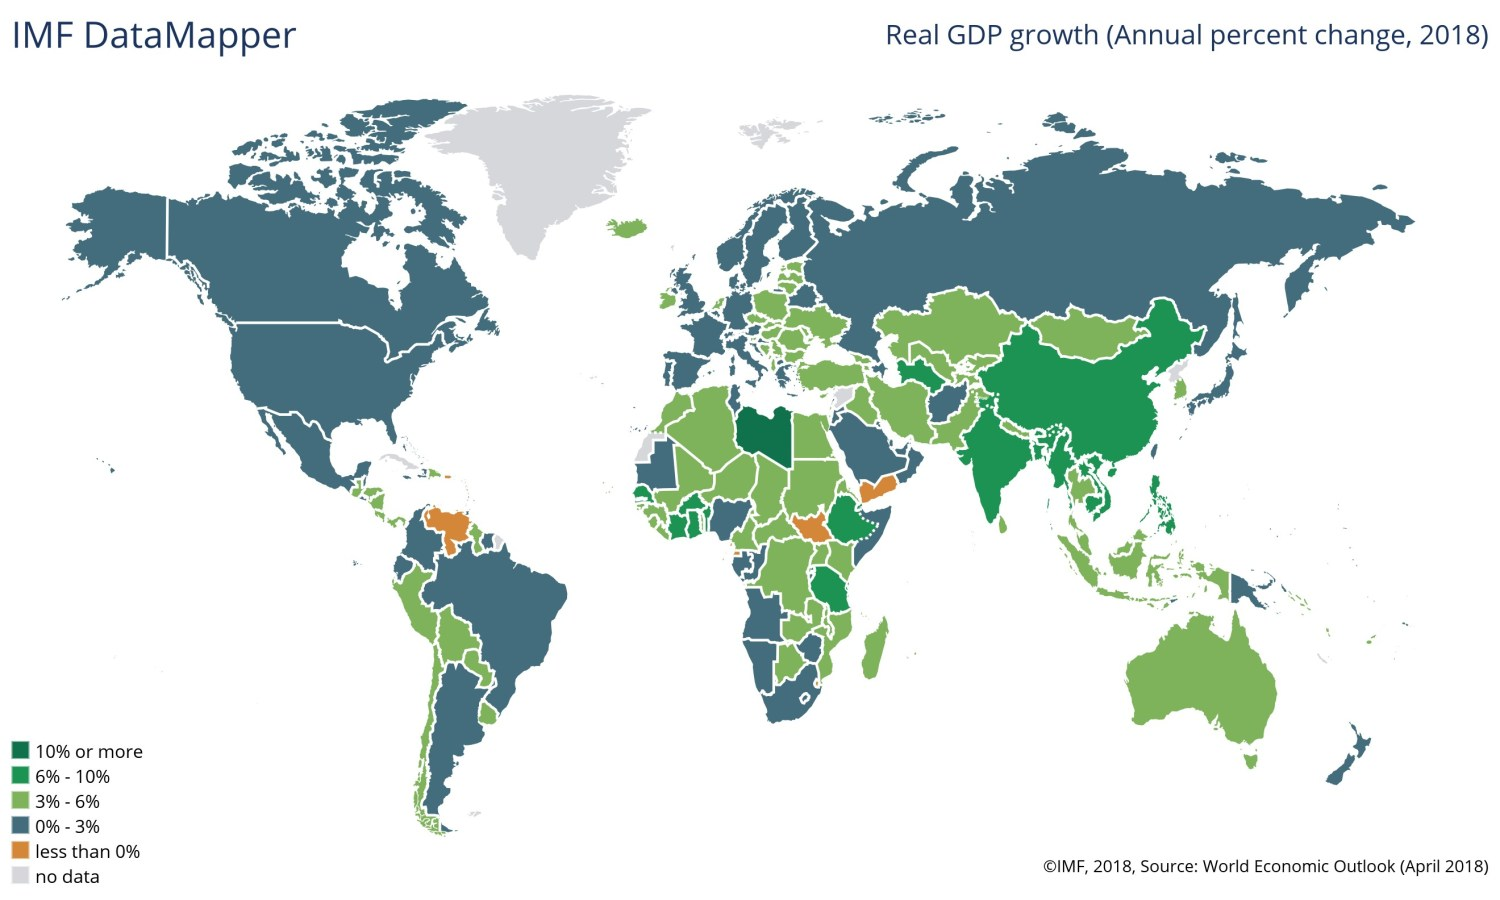 The picture shows all the Countries of the world, colored with differents kinds of green colors to represent the relatives forecasts concerning 2018 GDP